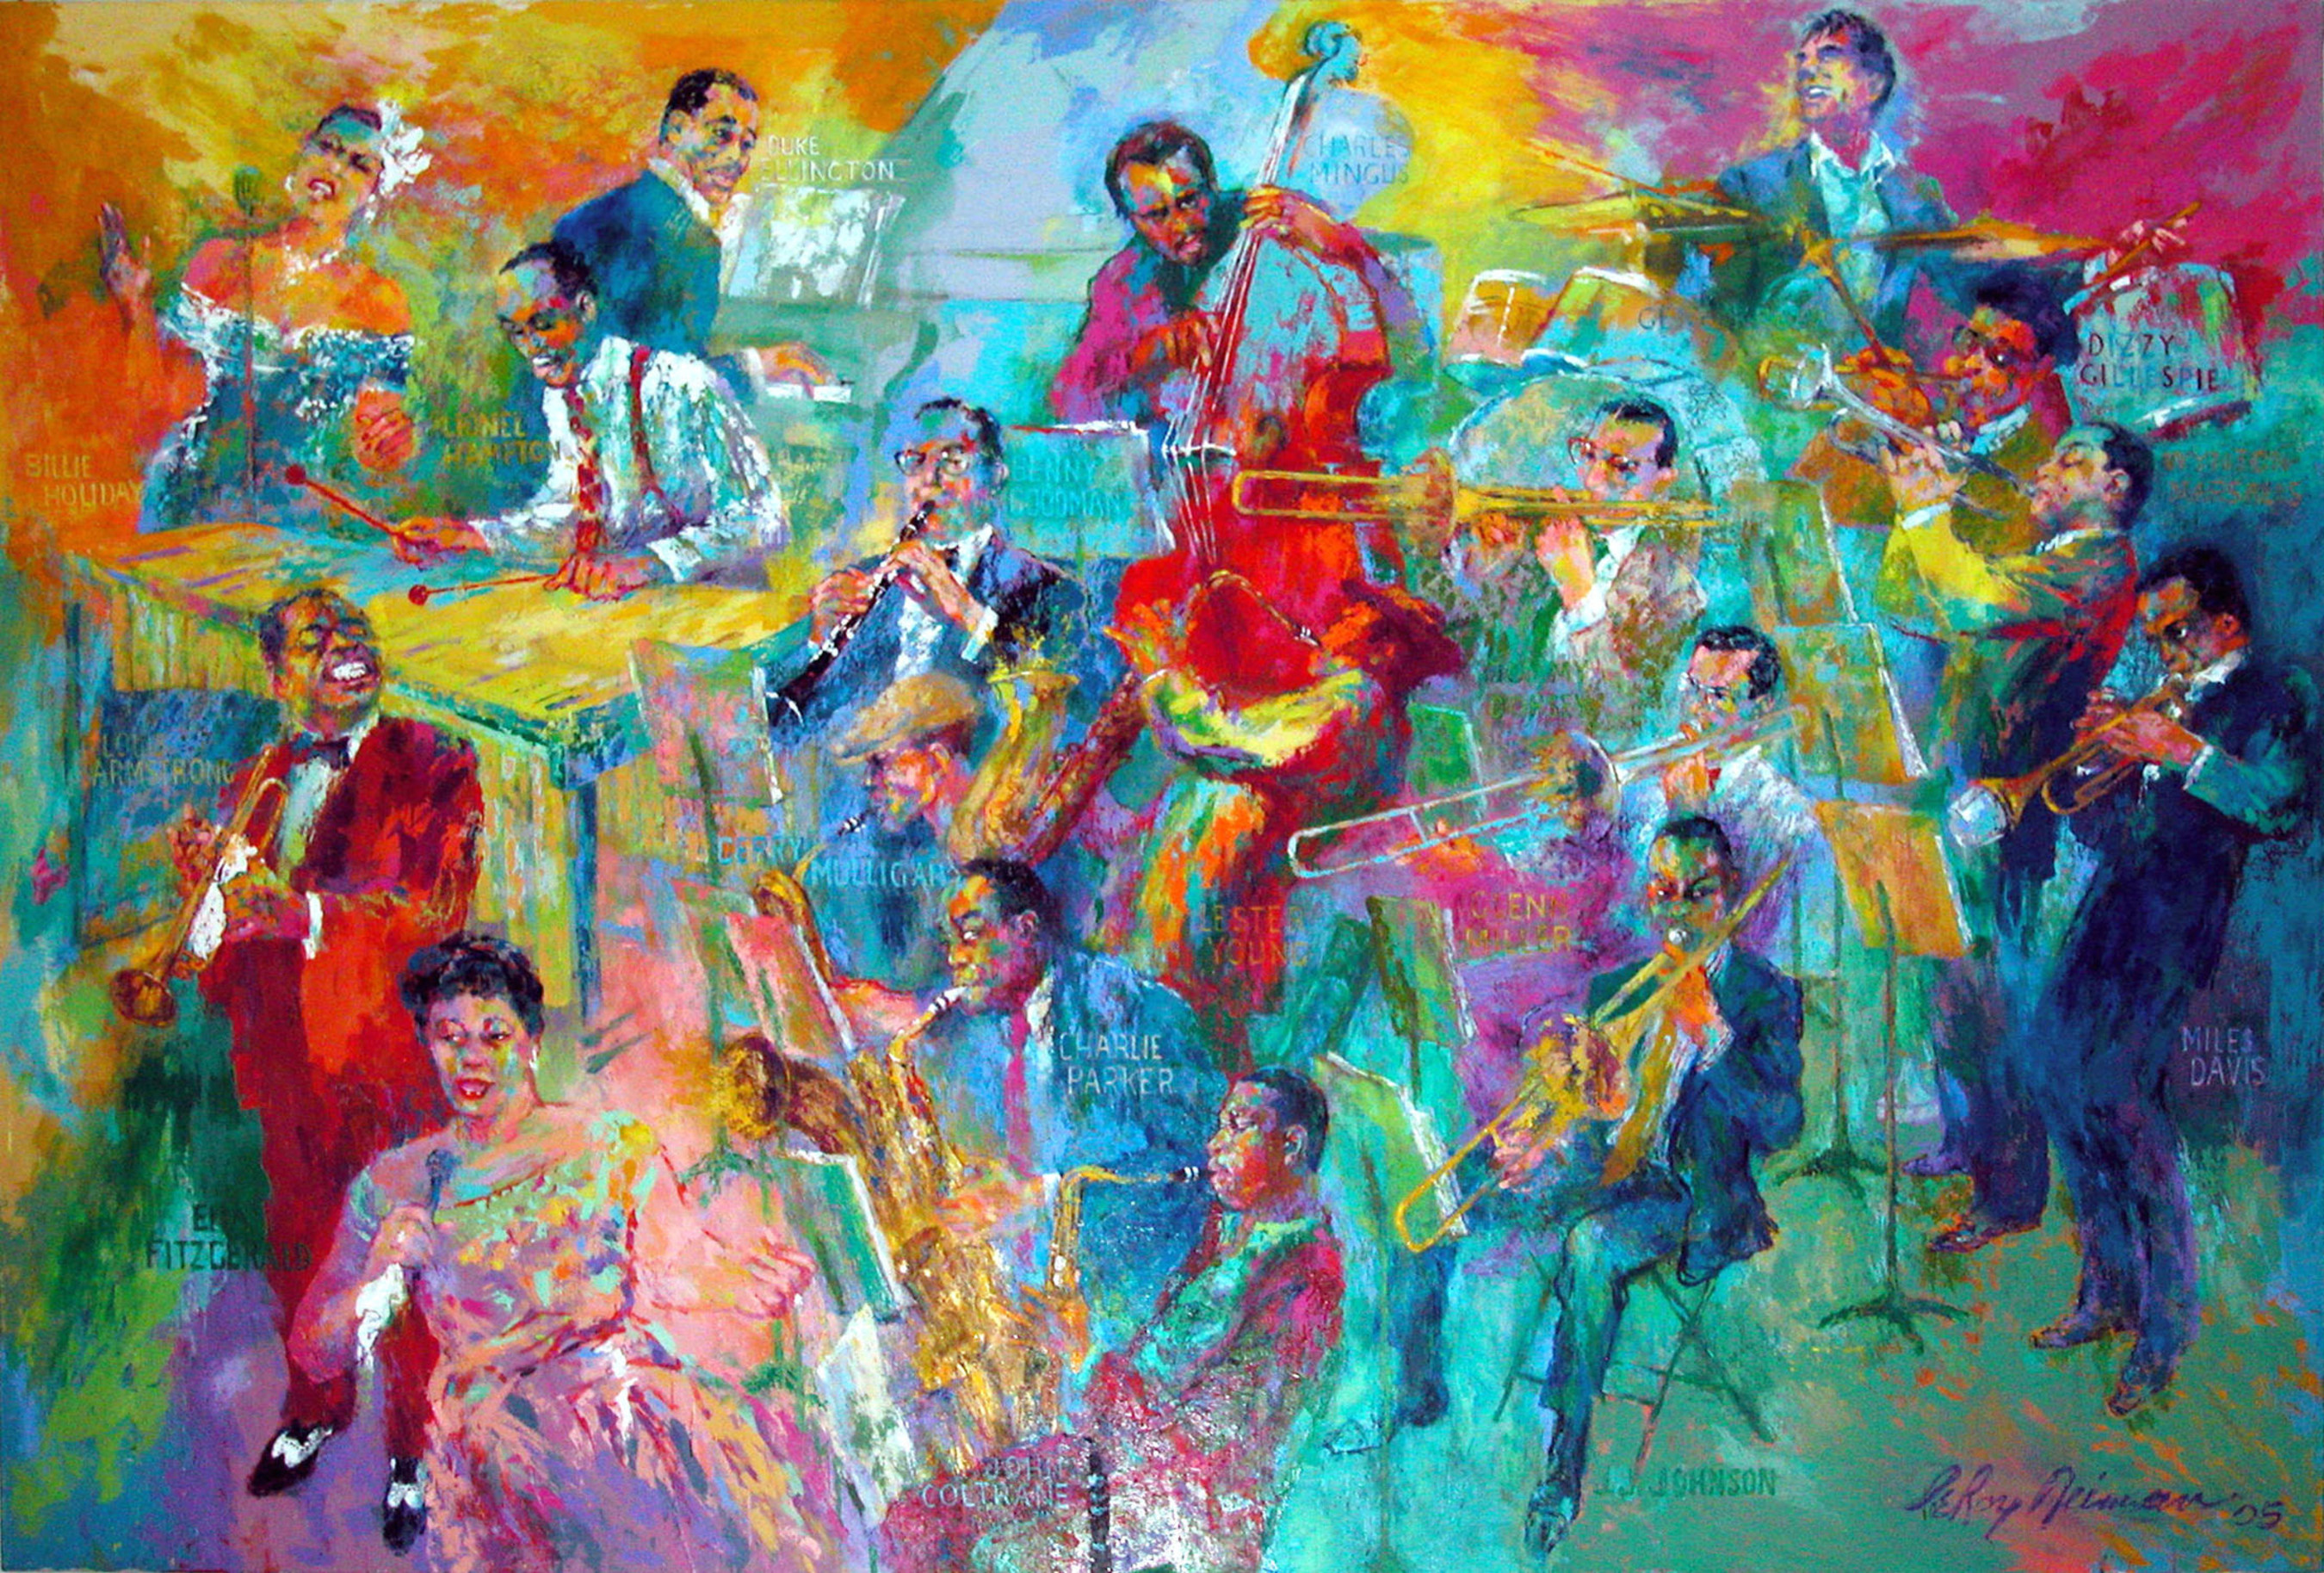 Smithsonian Announces $2.5 Million Jazz Endowment by LeRoy Neiman Foundation and Installation of Neiman's 'Big Band' Painting